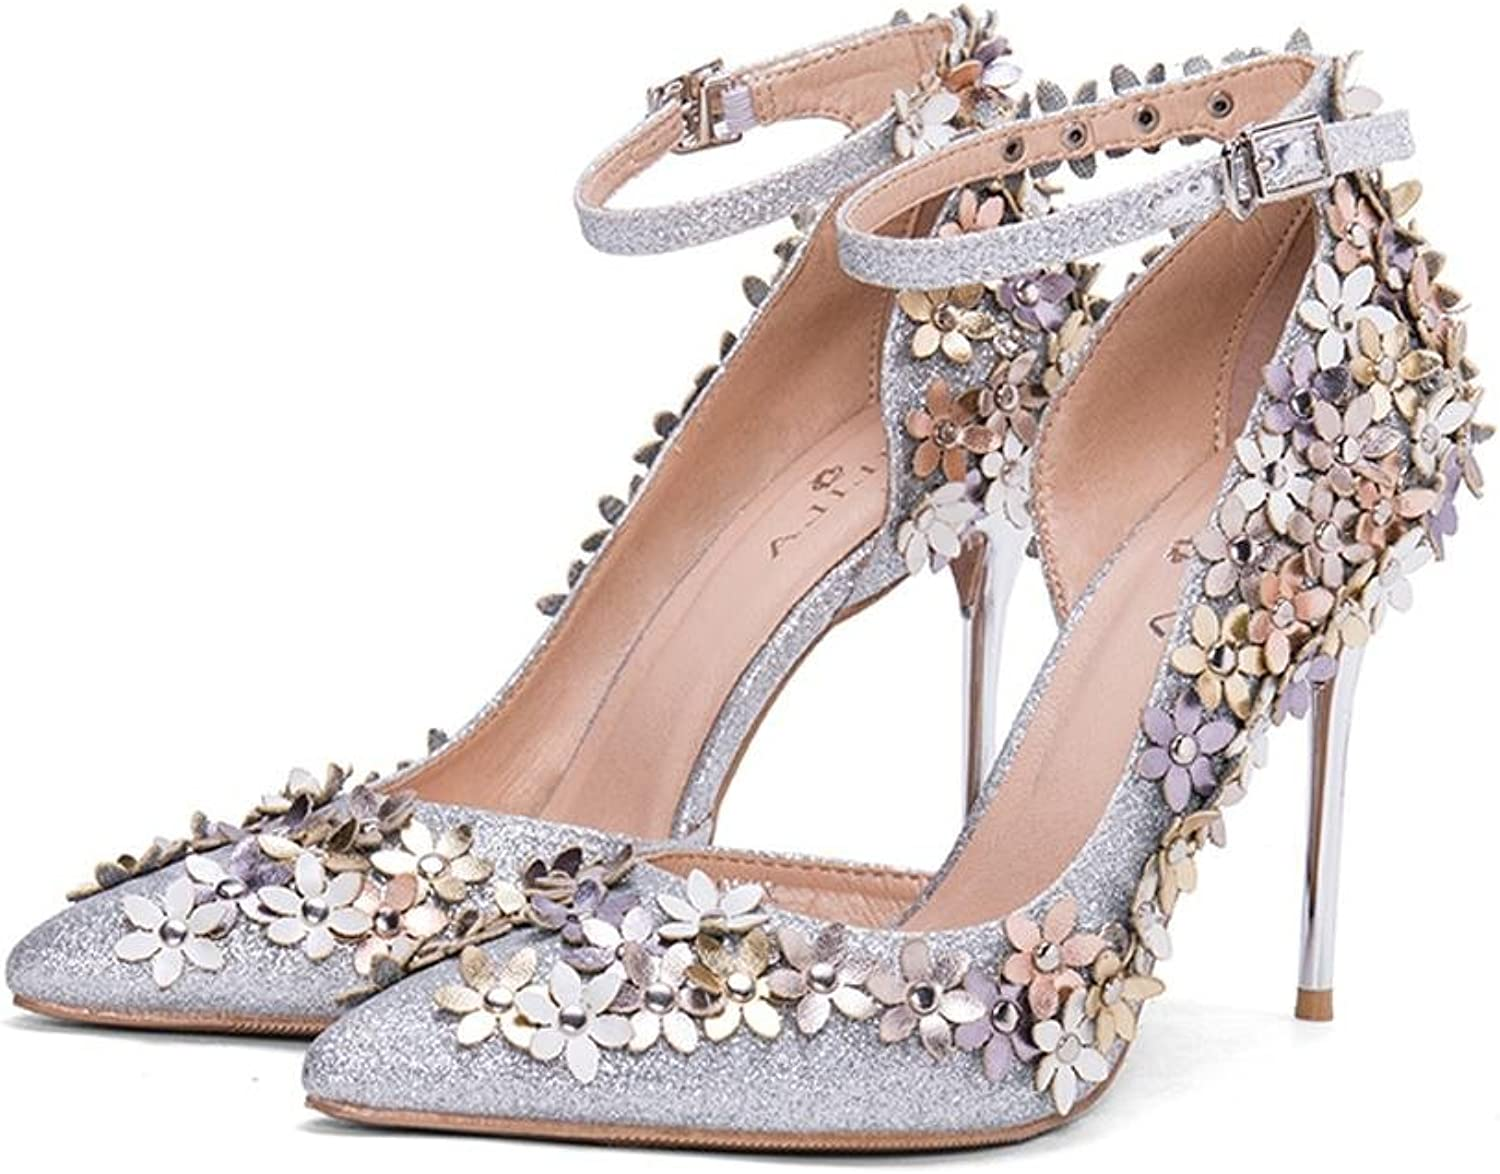 L@YC Women Sequins High Heels Summer Fine with The Tip of The Word Ladies with Sandals Side Empty Flower Dress shoes